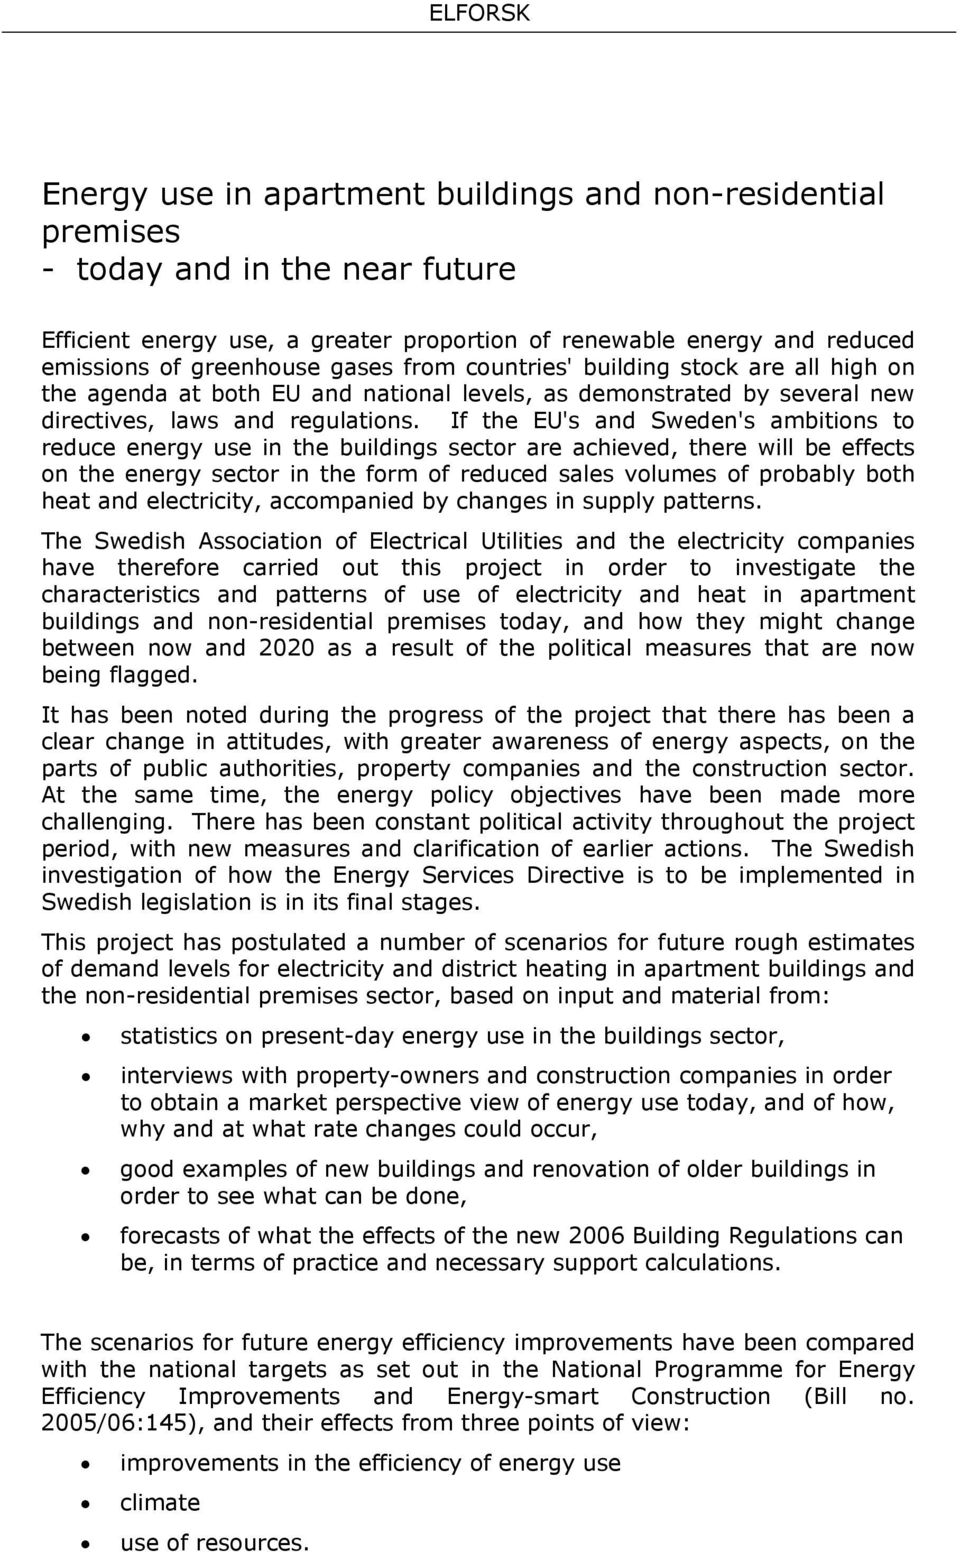 If the EU's and Sweden's ambitions to reduce energy use in the buildings sector are achieved, there will be effects on the energy sector in the form of reduced sales volumes of probably both heat and